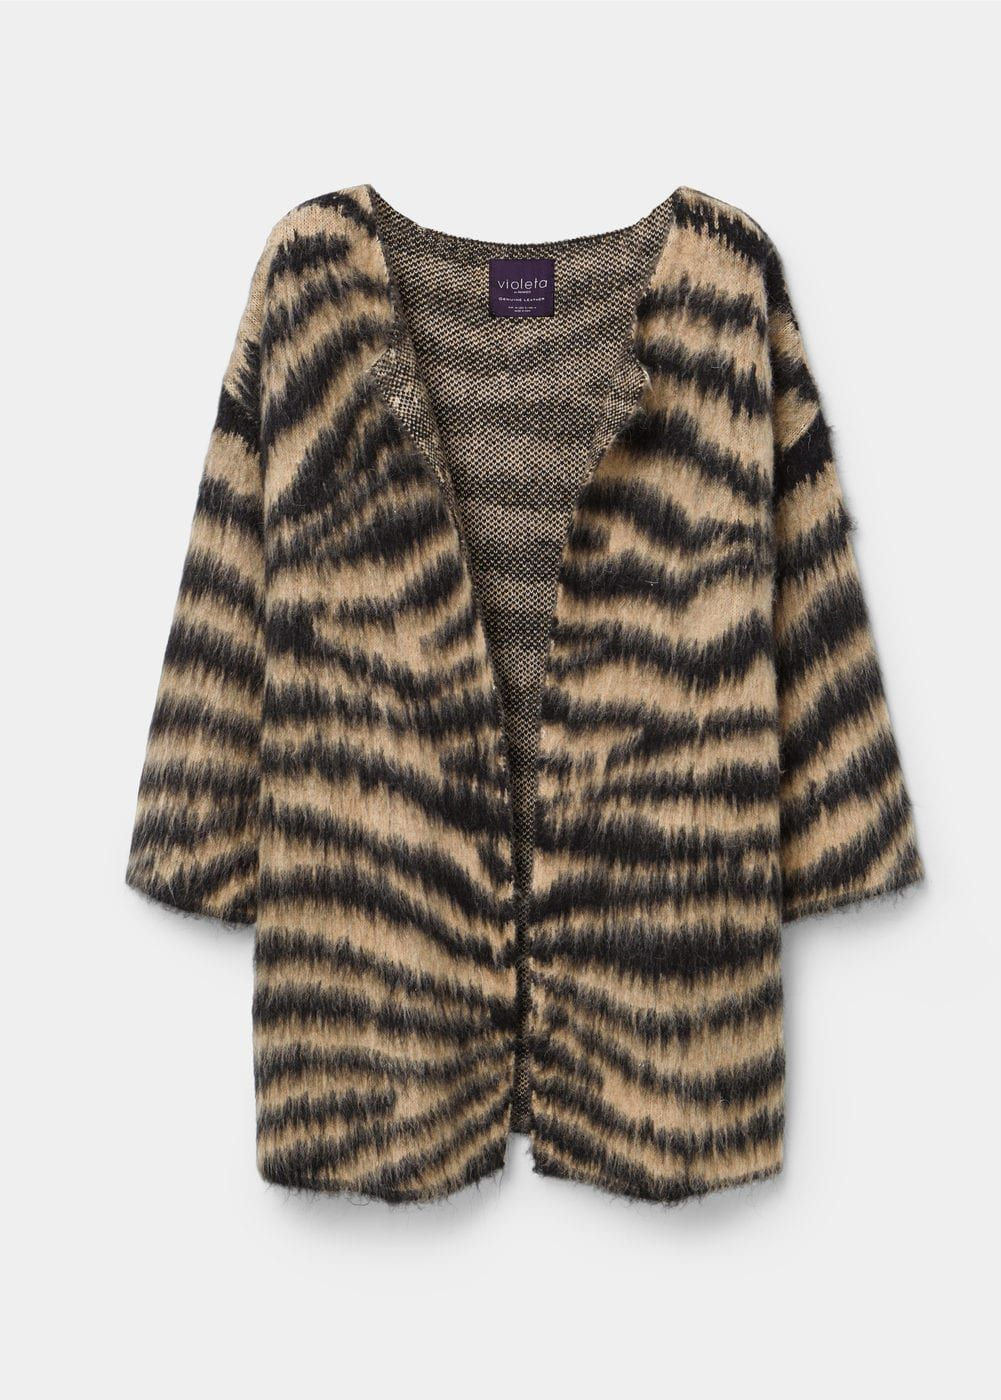 Cardigan mit animal-print | VIOLETA BY MANGO